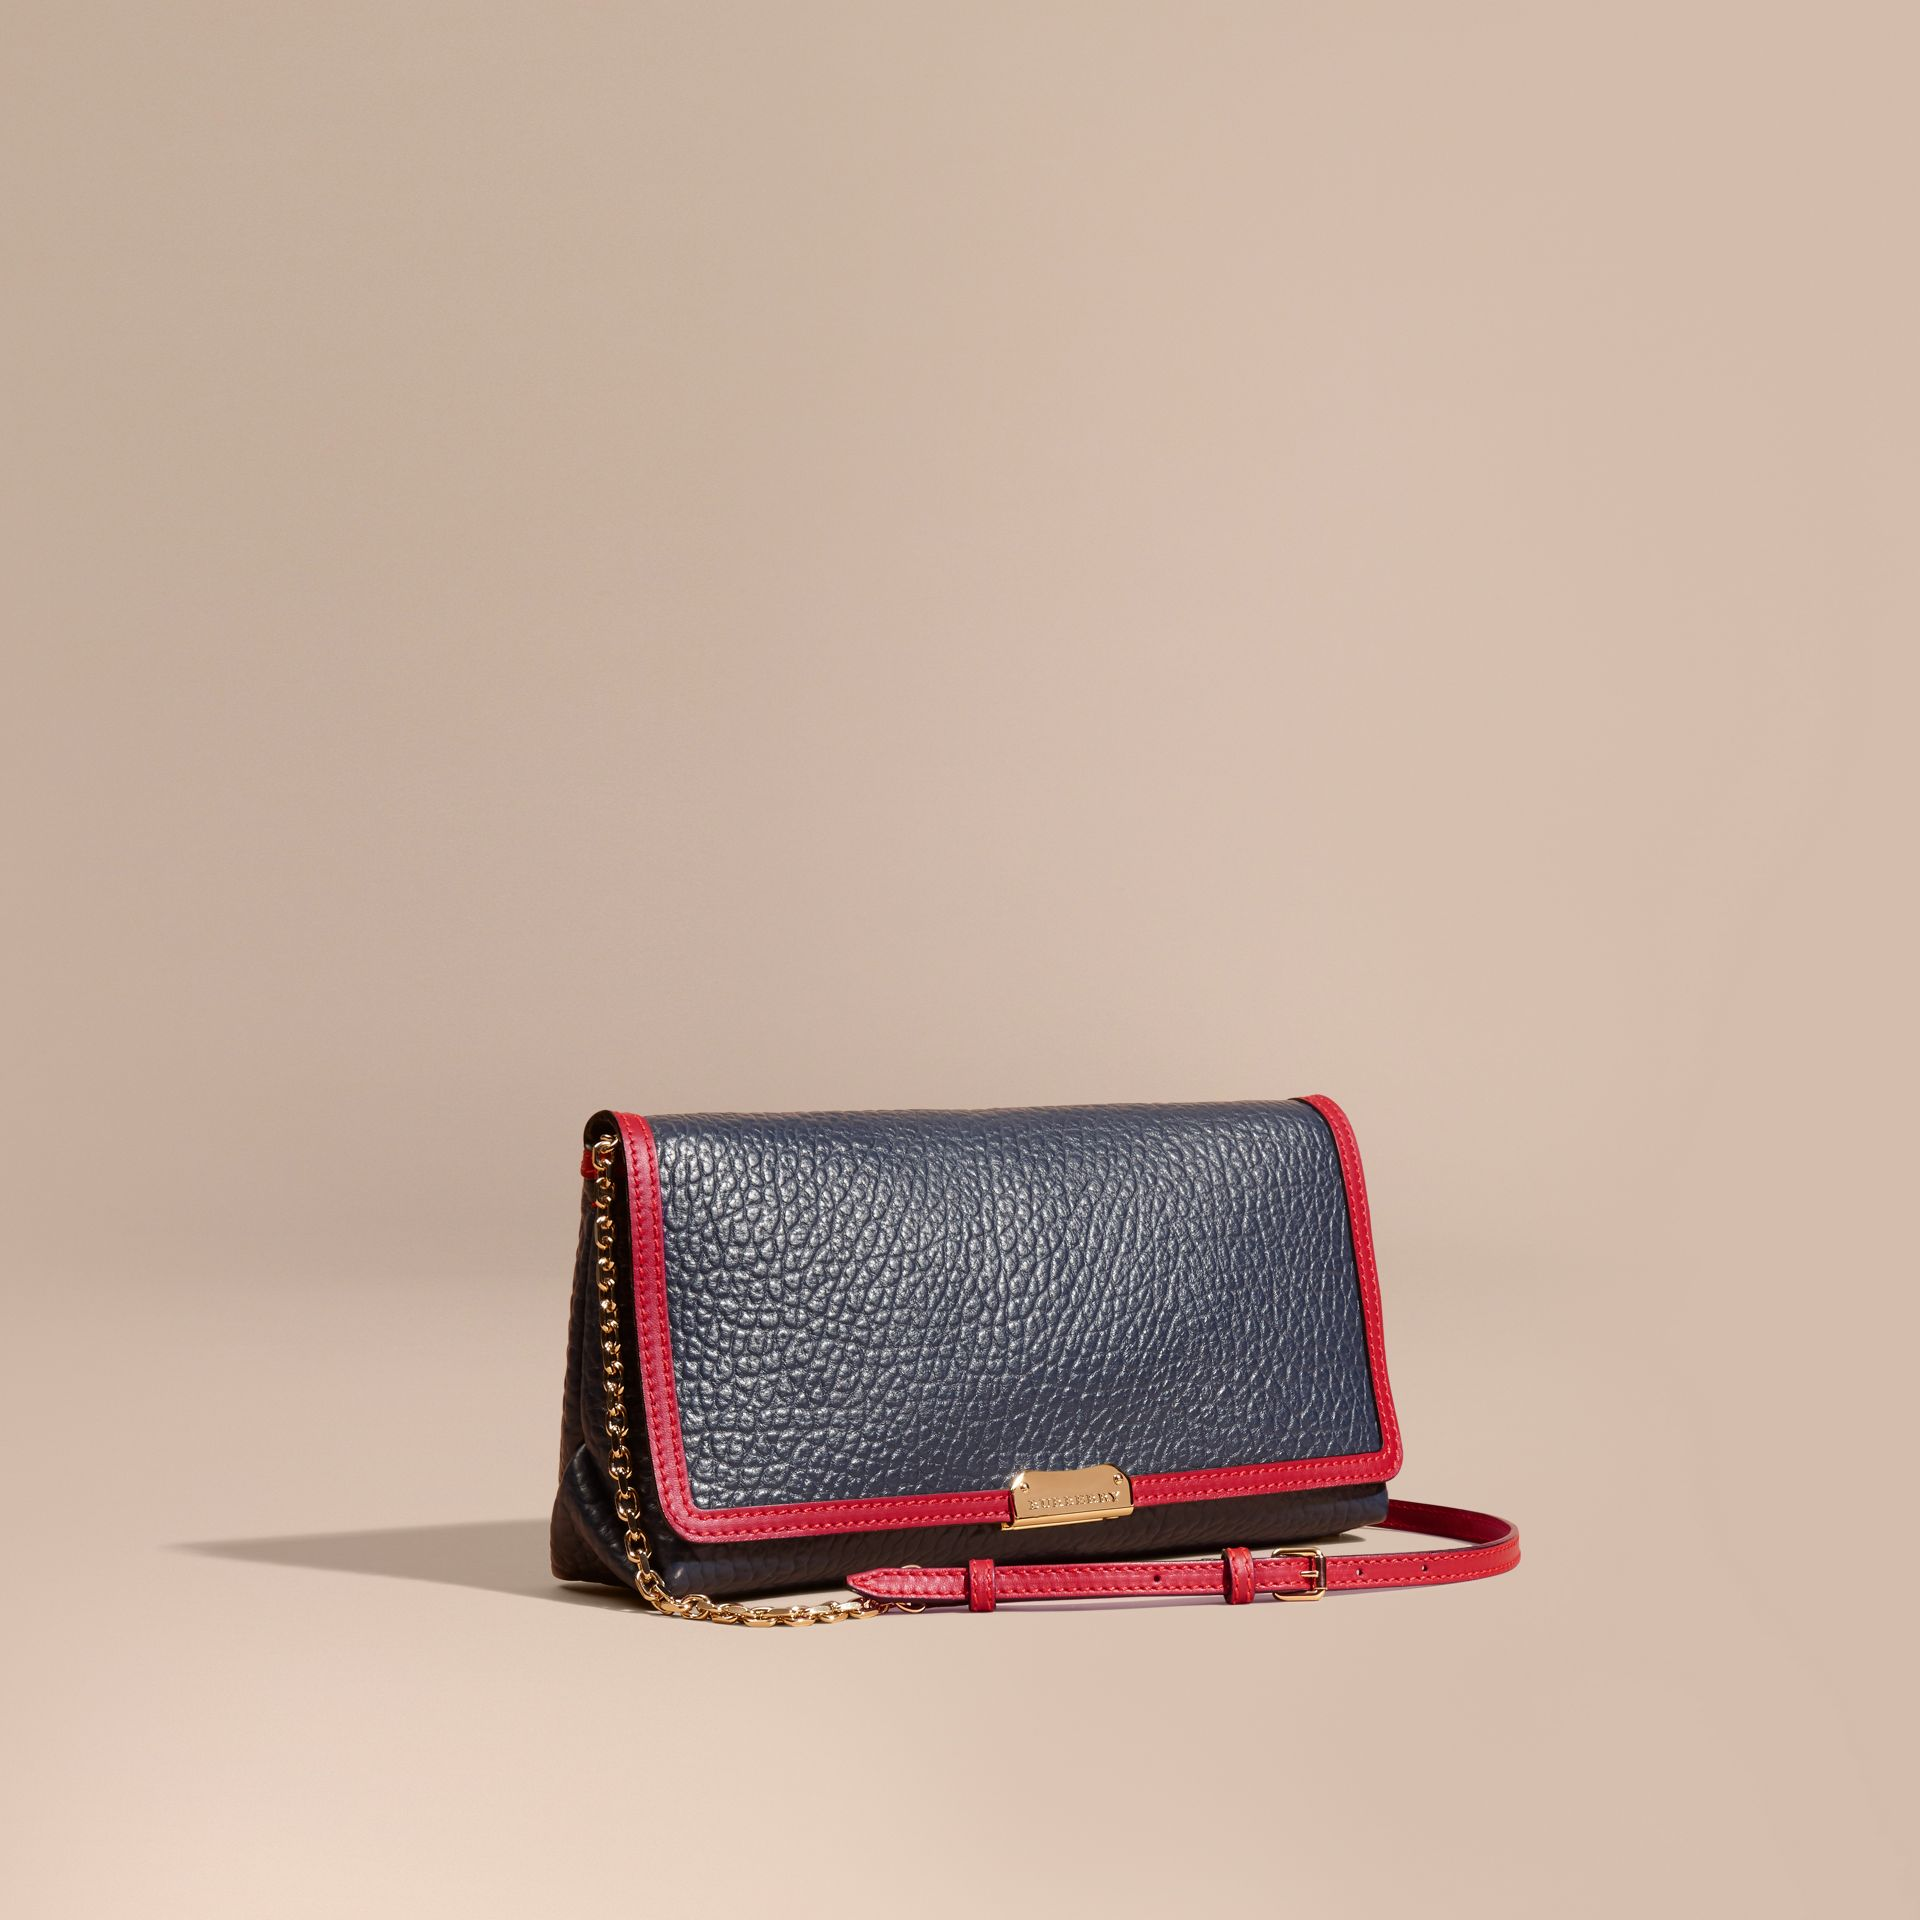 Blue carbon/parade red Medium Contrast Border Signature Grain Leather Clutch Bag - gallery image 1